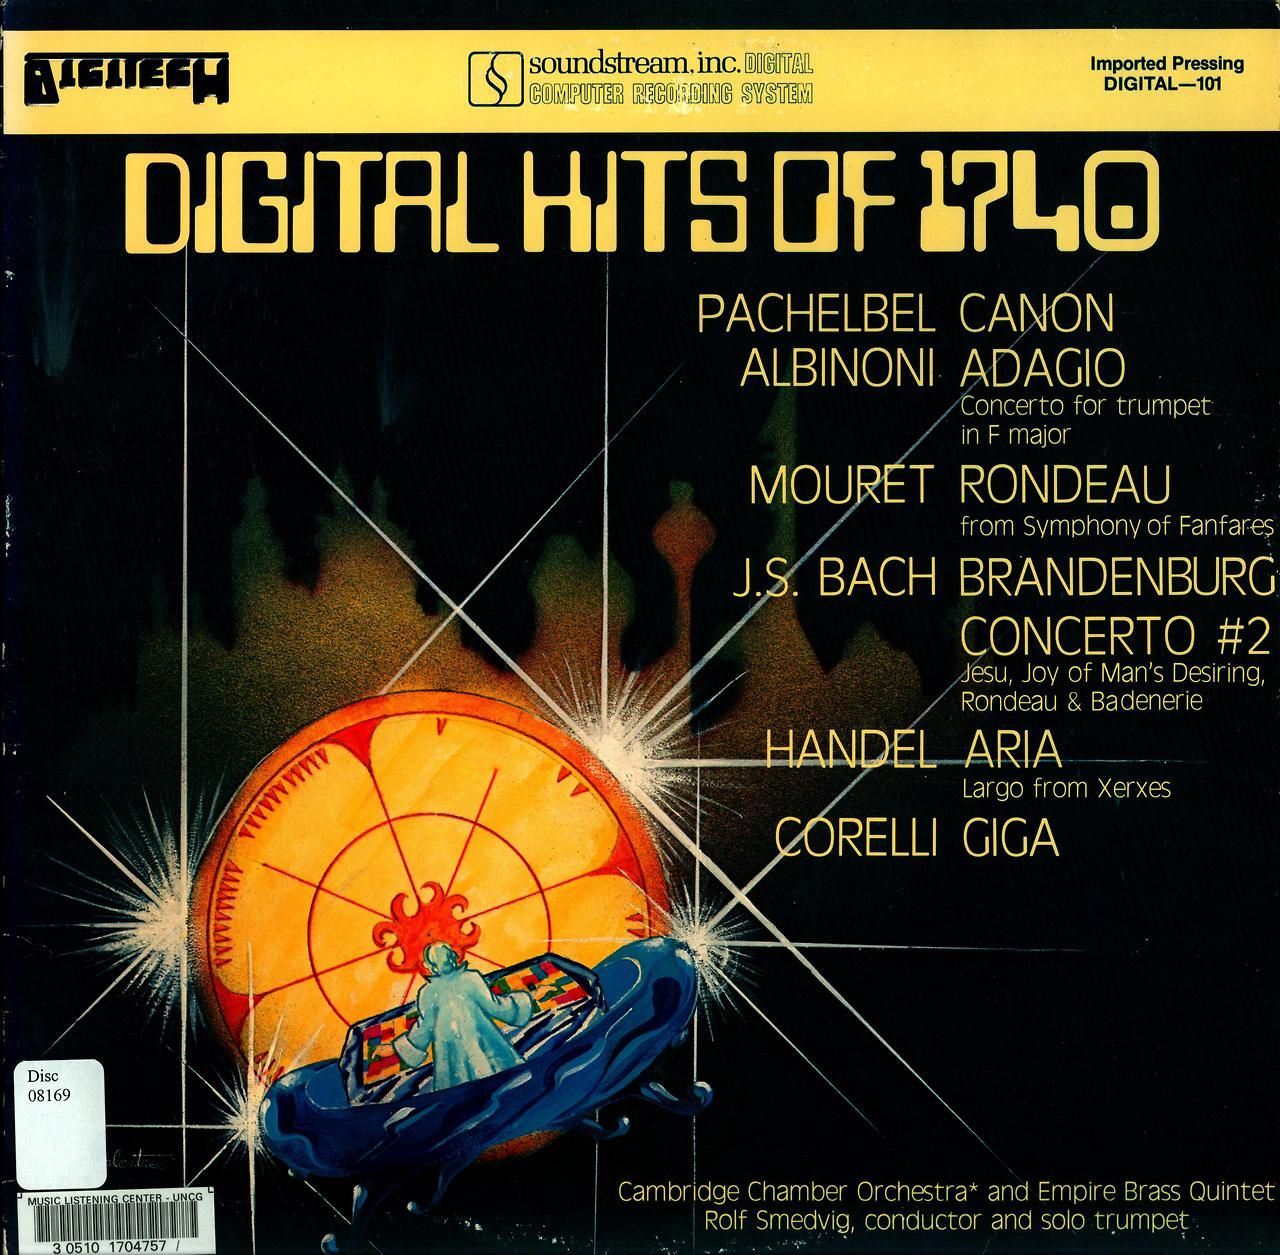 Digital Hits of 1740 Cambridge Chamber Orchestra and Empire Brass Quintet Rolf Smedvig, cond. and solo trumpet Digitech:Soundstream, Inc. Digital 101 (1979) Cover art by Galentree(sp?)